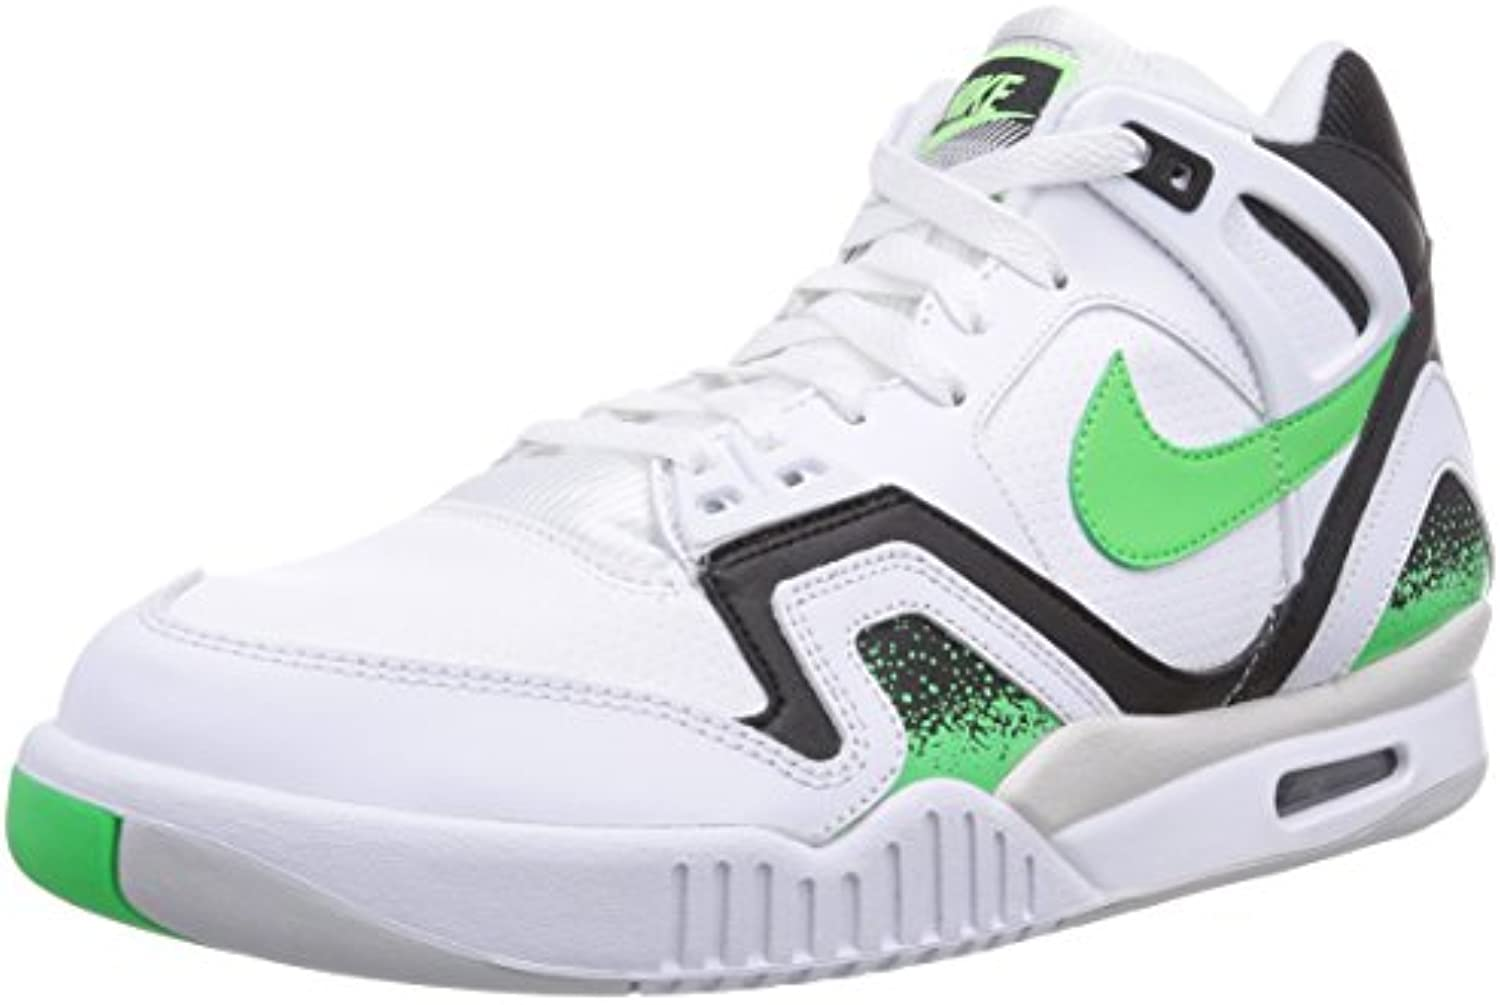 Nike - Zapatillas de tenis Air Tech Challenge II